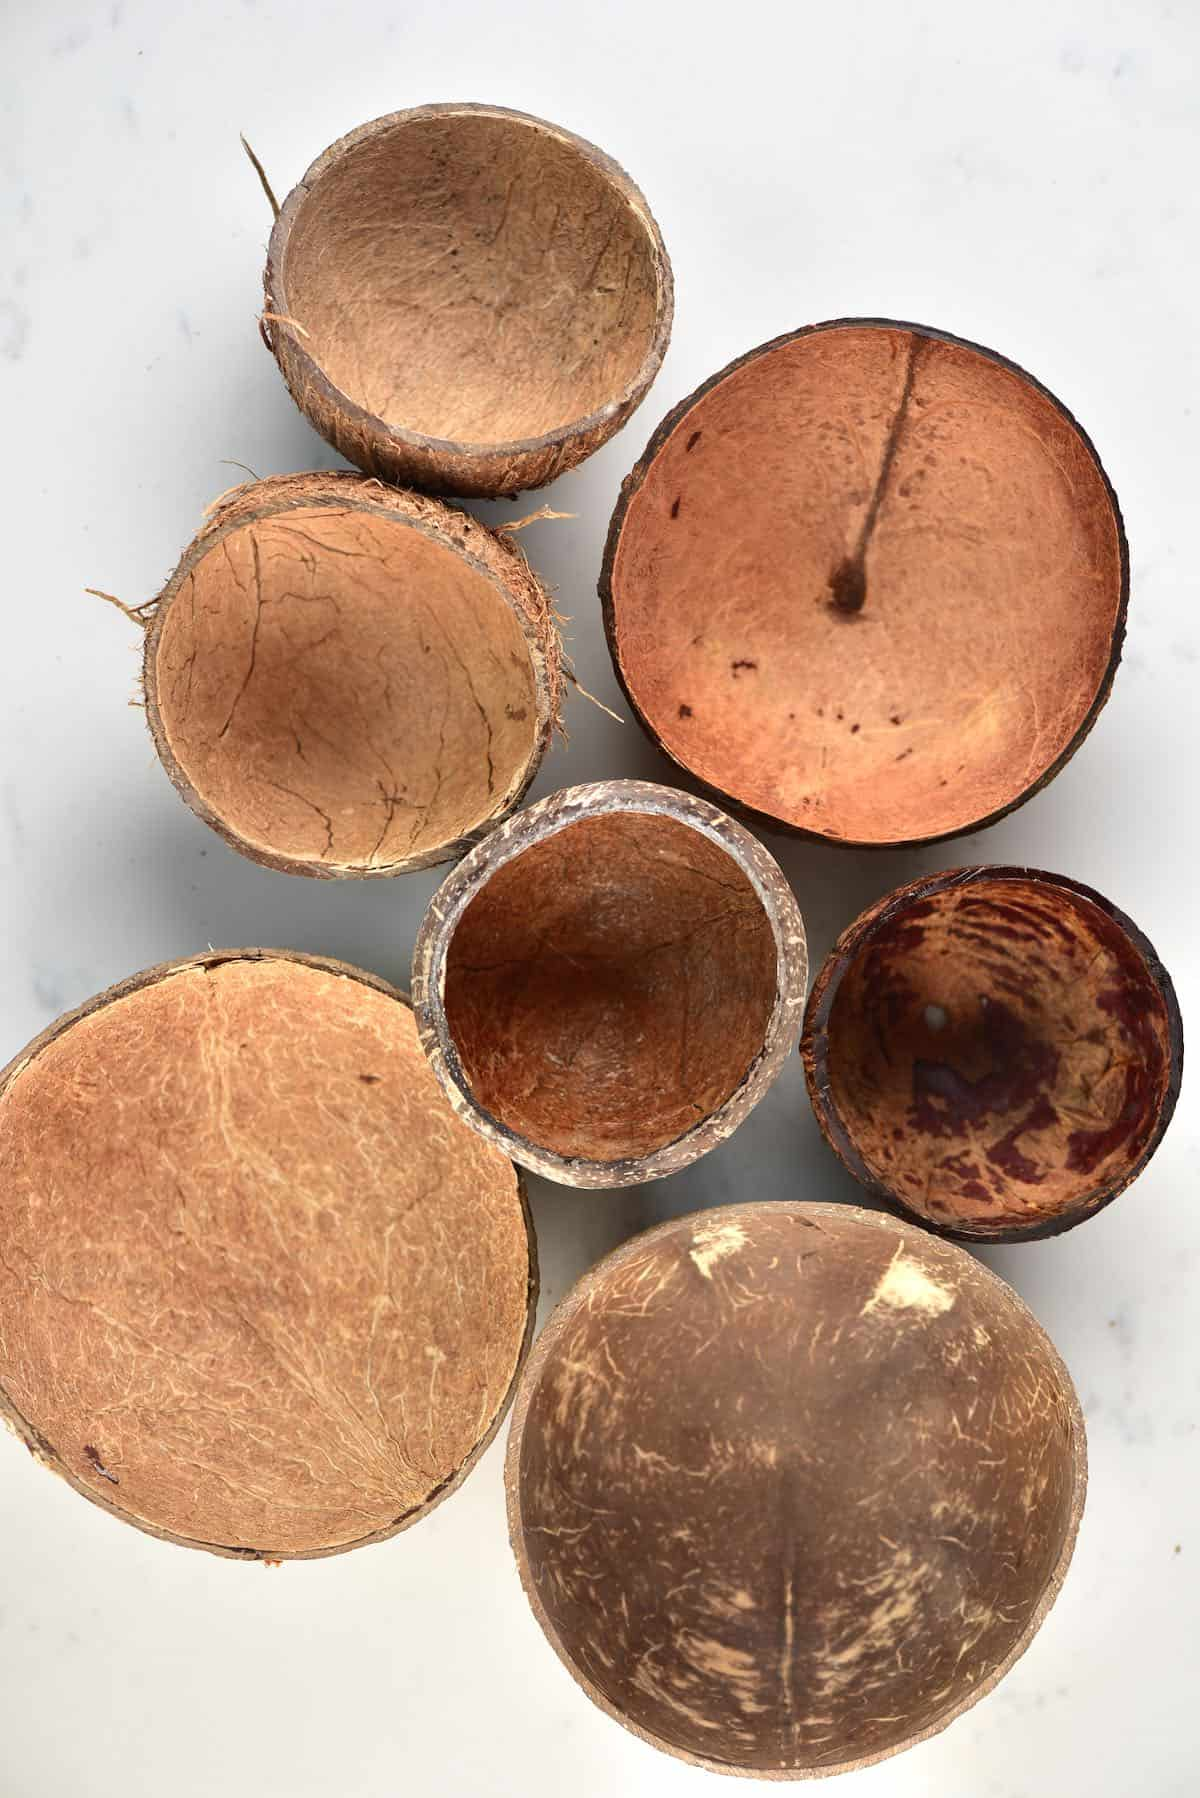 Seven Coconut shells bowls on a flat surface